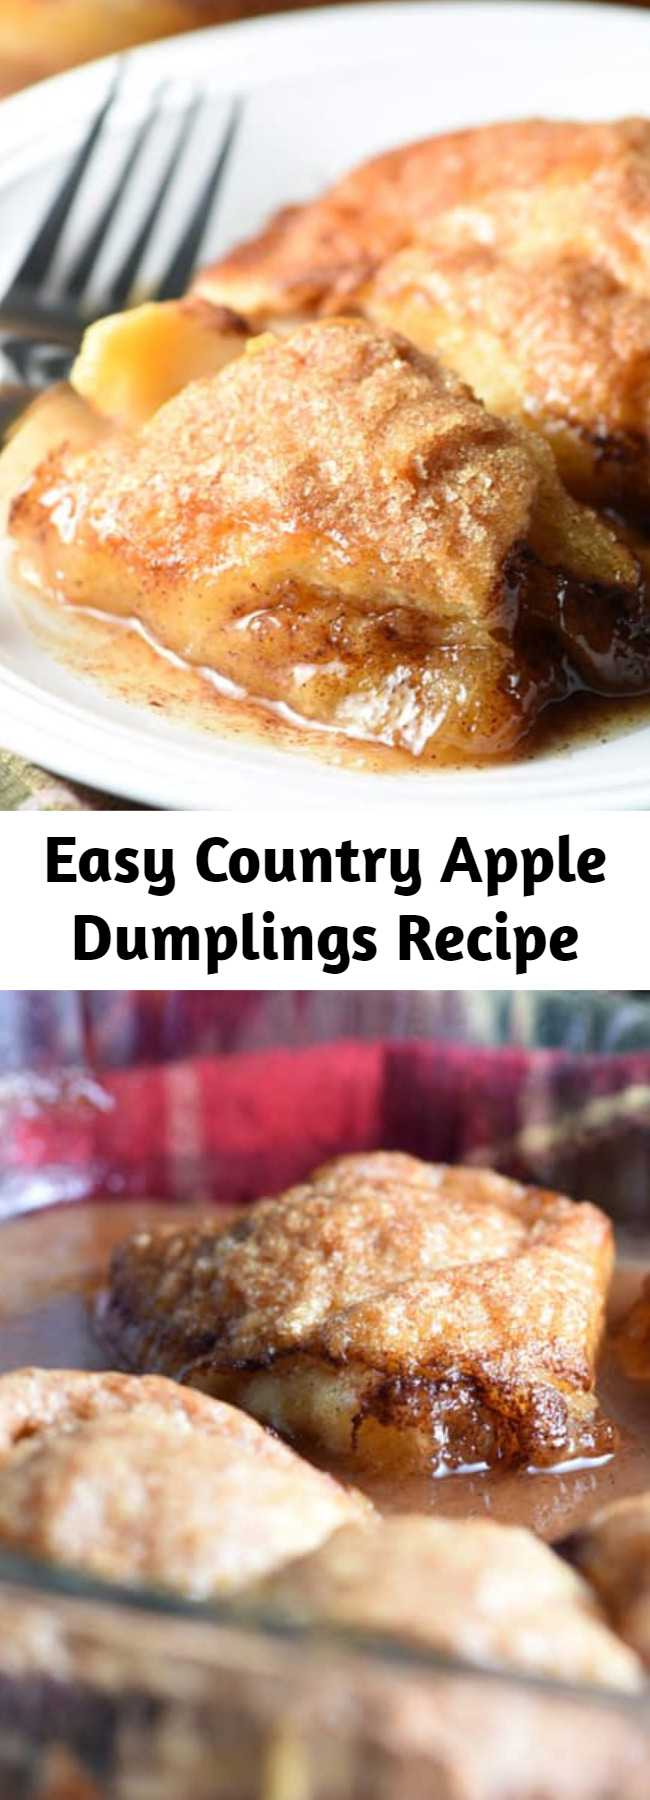 Easy Country Apple Dumplings Recipe - These Easy Country Apple Dumplings are soft and gooey on the bottom, but crispy on top, and they taste like apple pie. So easy and ridiculously good. Plus the house smells amazing while they bake!